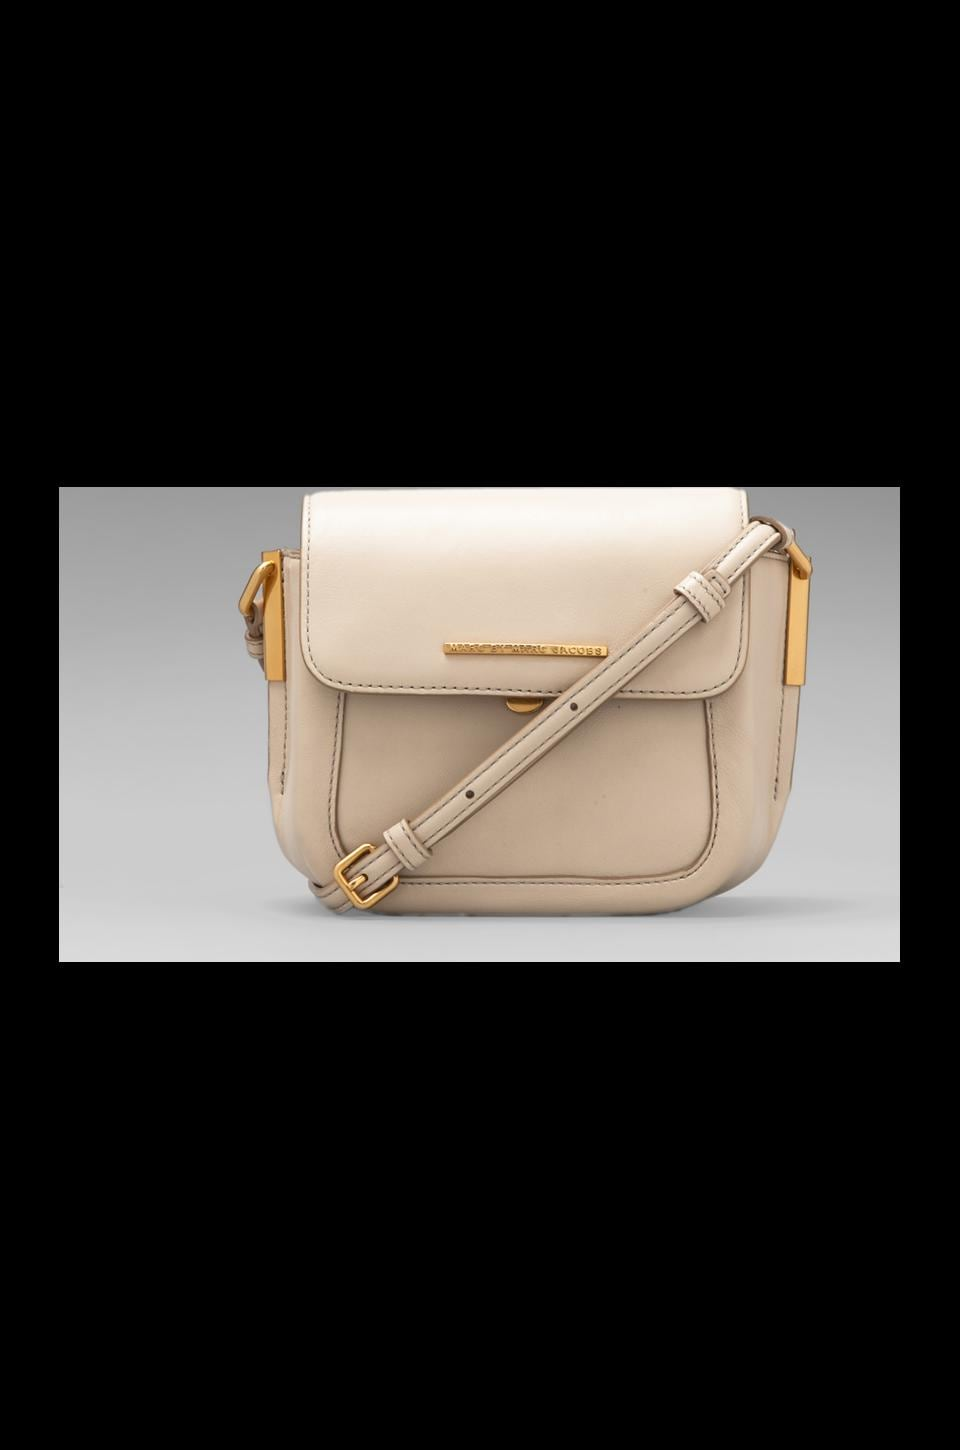 Marc by Marc Jacobs Get A Grip Taylor Crossbody in Lightsand